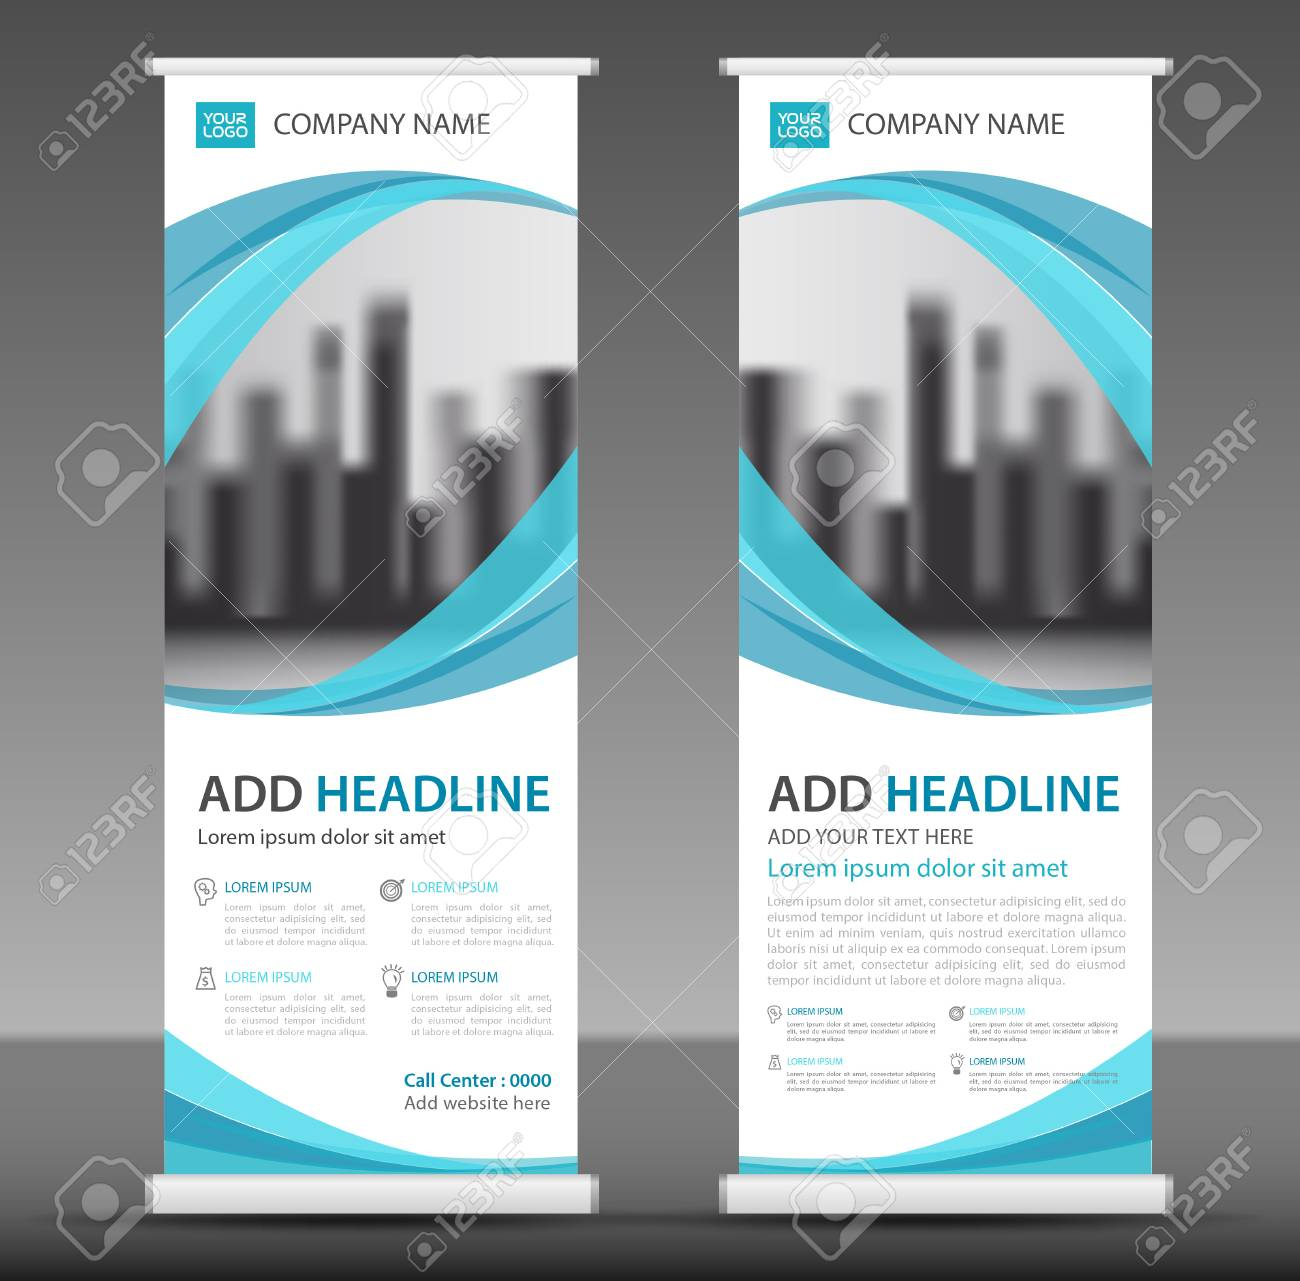 Blue Roll up banner stand template design. - 91055953